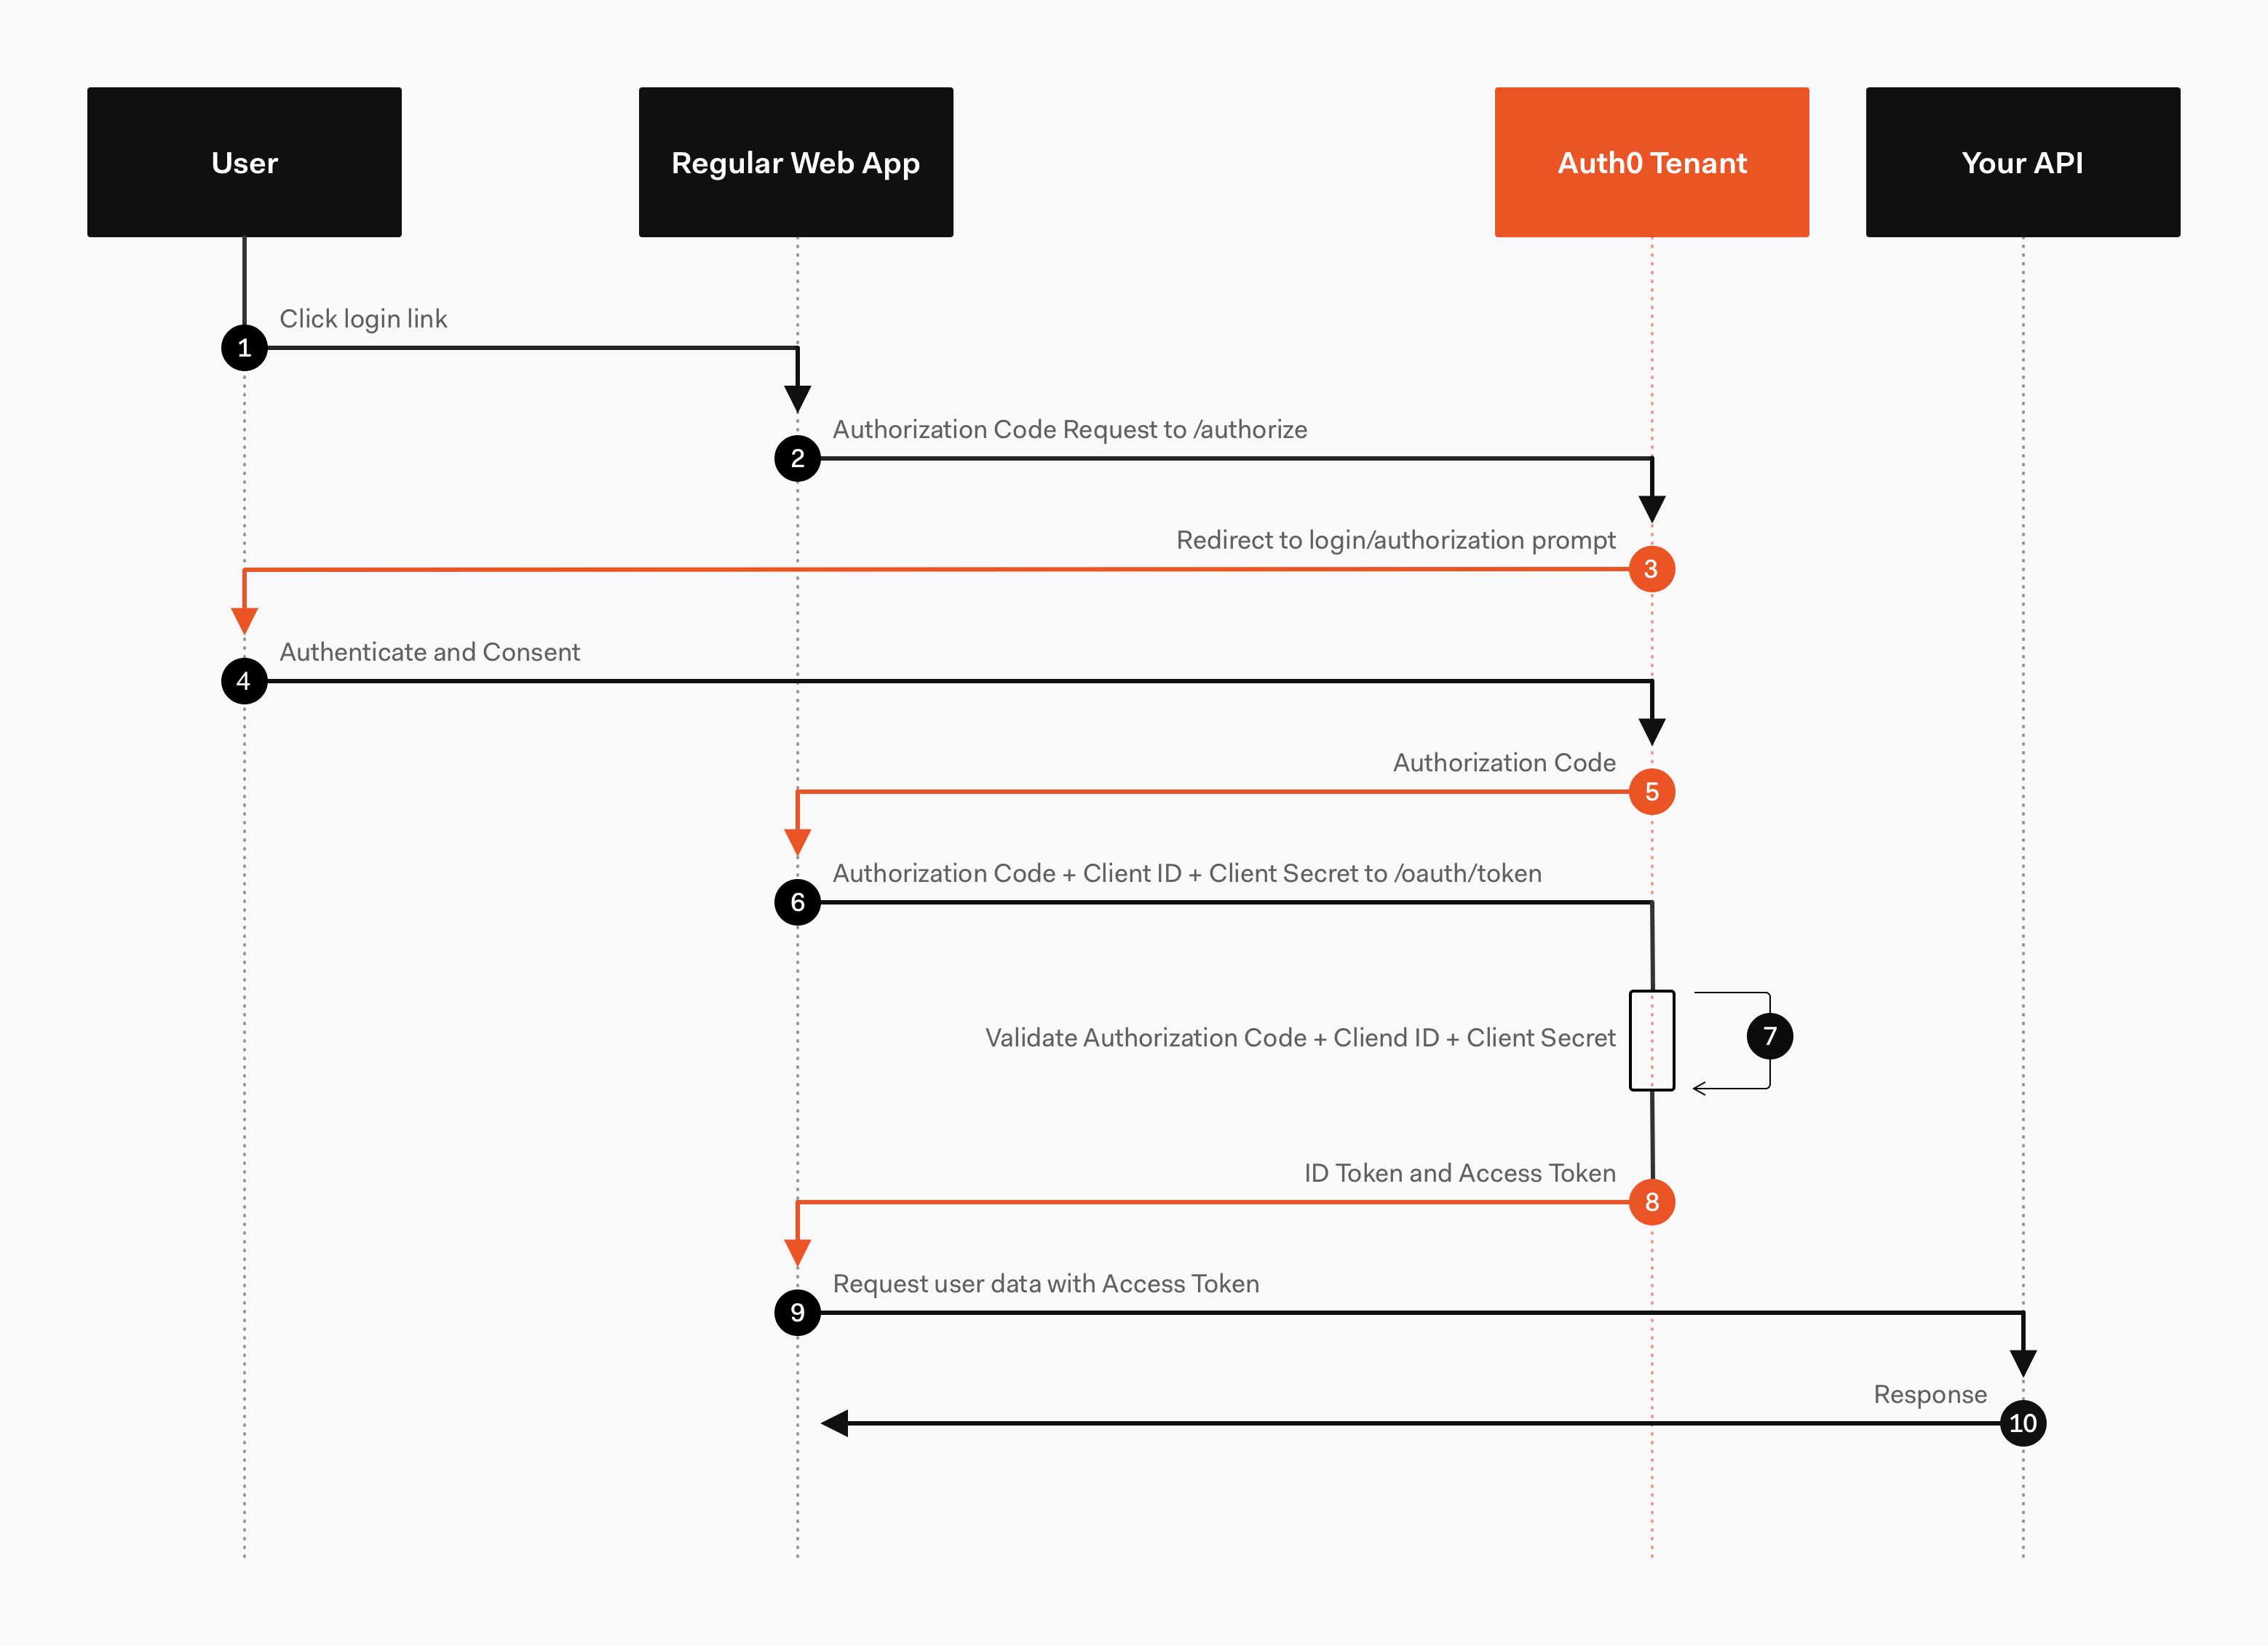 Auth sequence flow